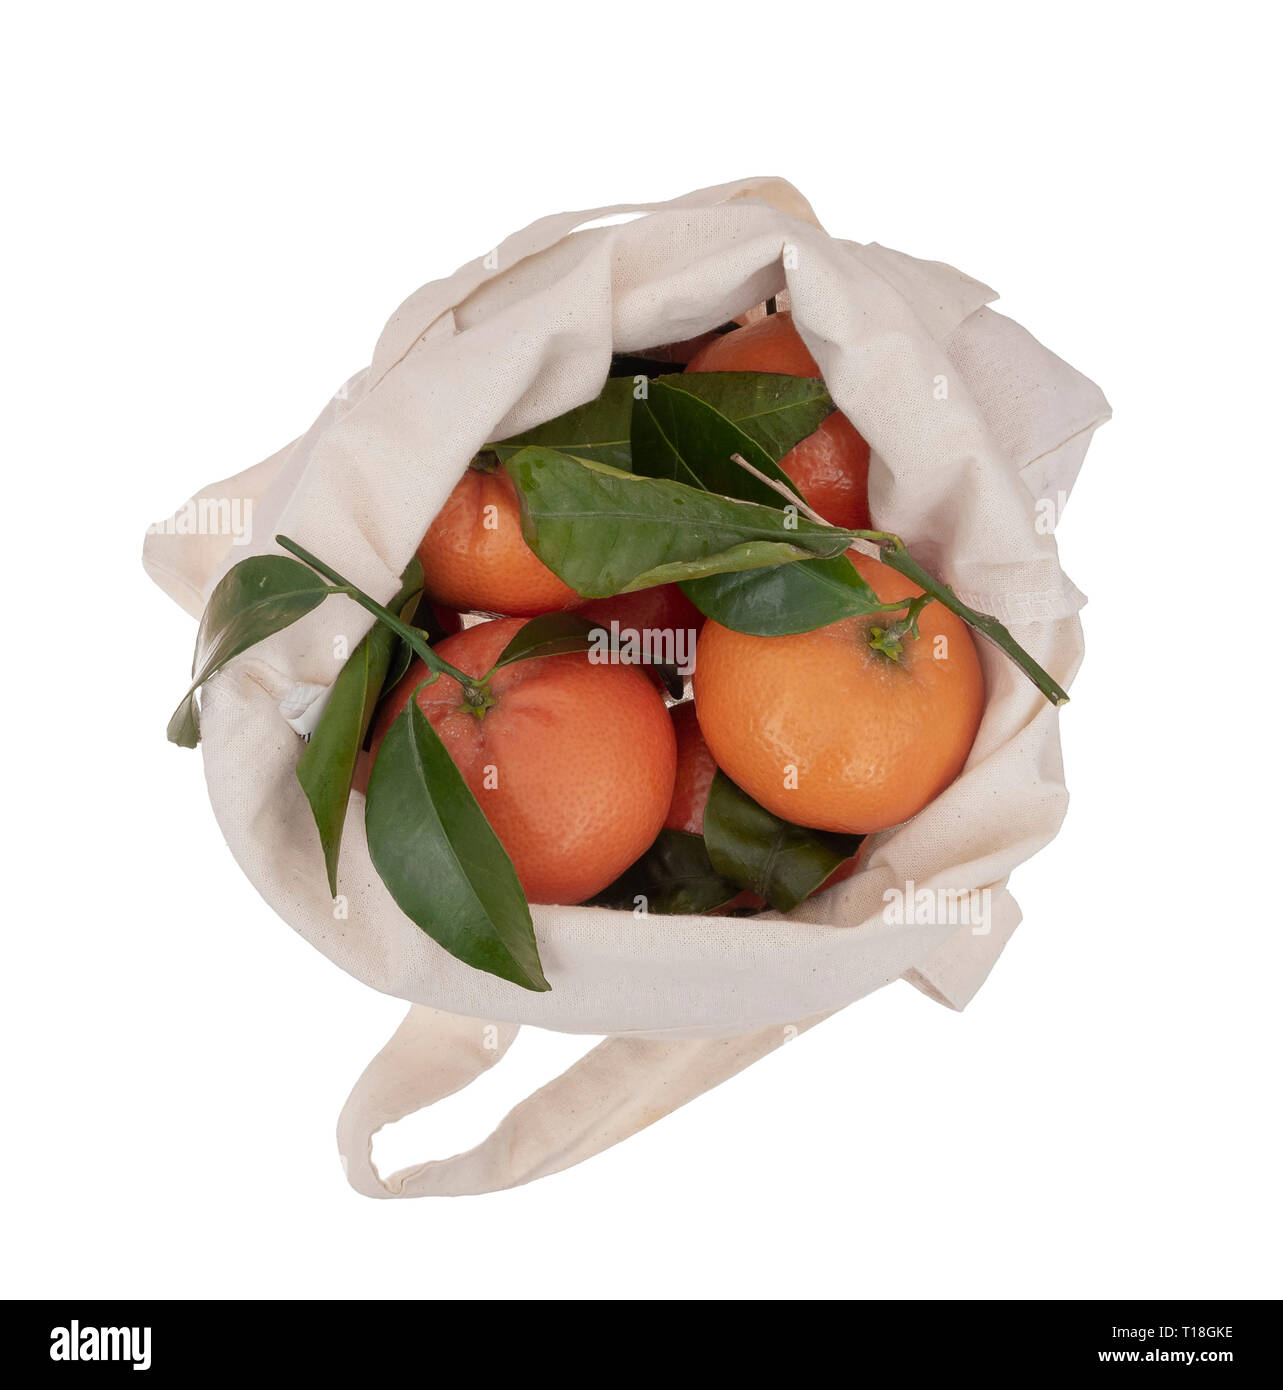 Fresh picked oranges in reusable, recyclable fabric shopping tote bag, isolated on white. For environmentally friendly, green consumers.Overhead view. - Stock Image